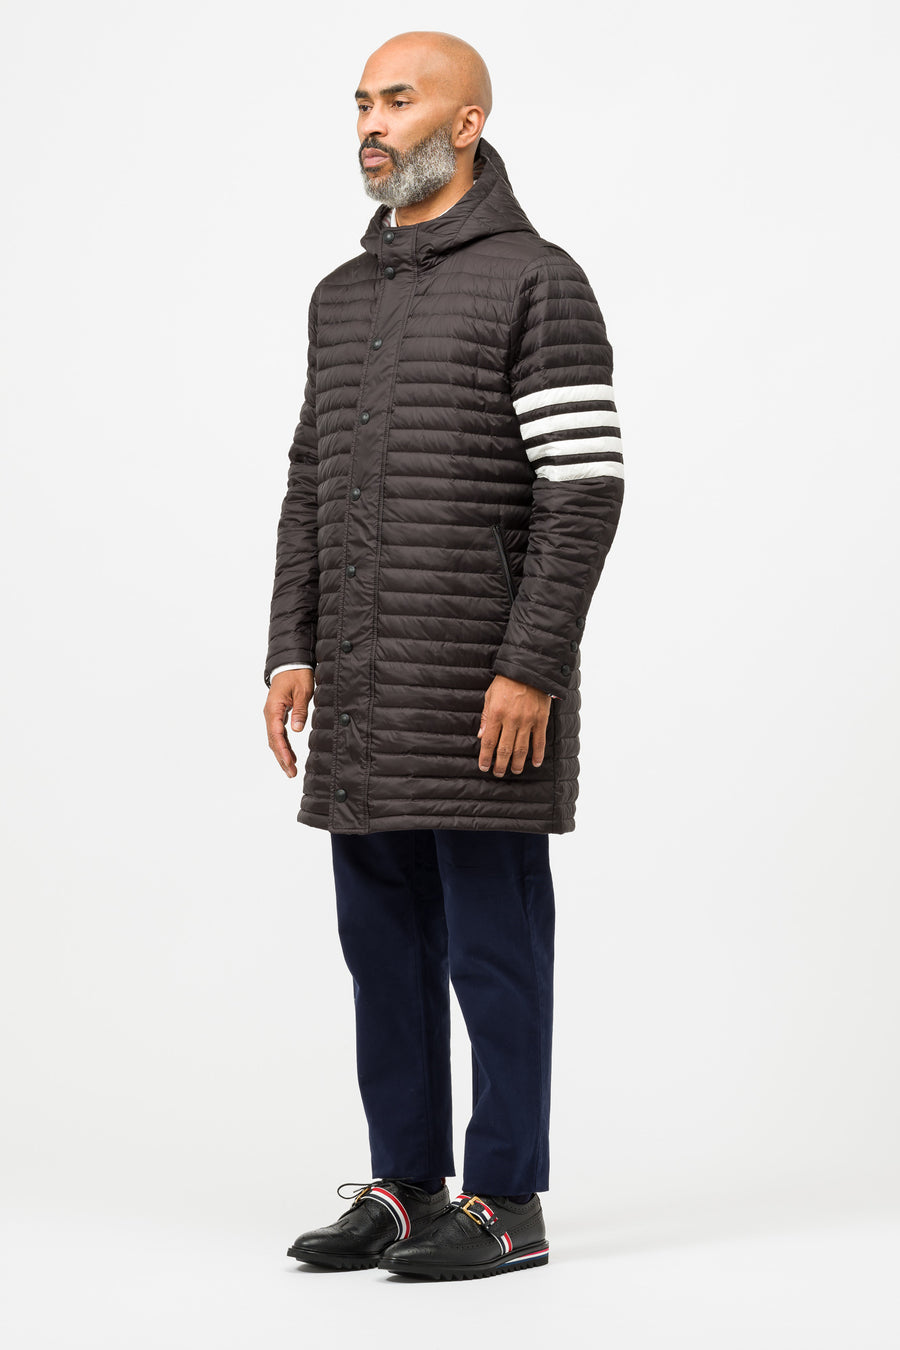 Thom Browne 4 Stripe Downfill Quilted Hooded Jacket in Black - Notre